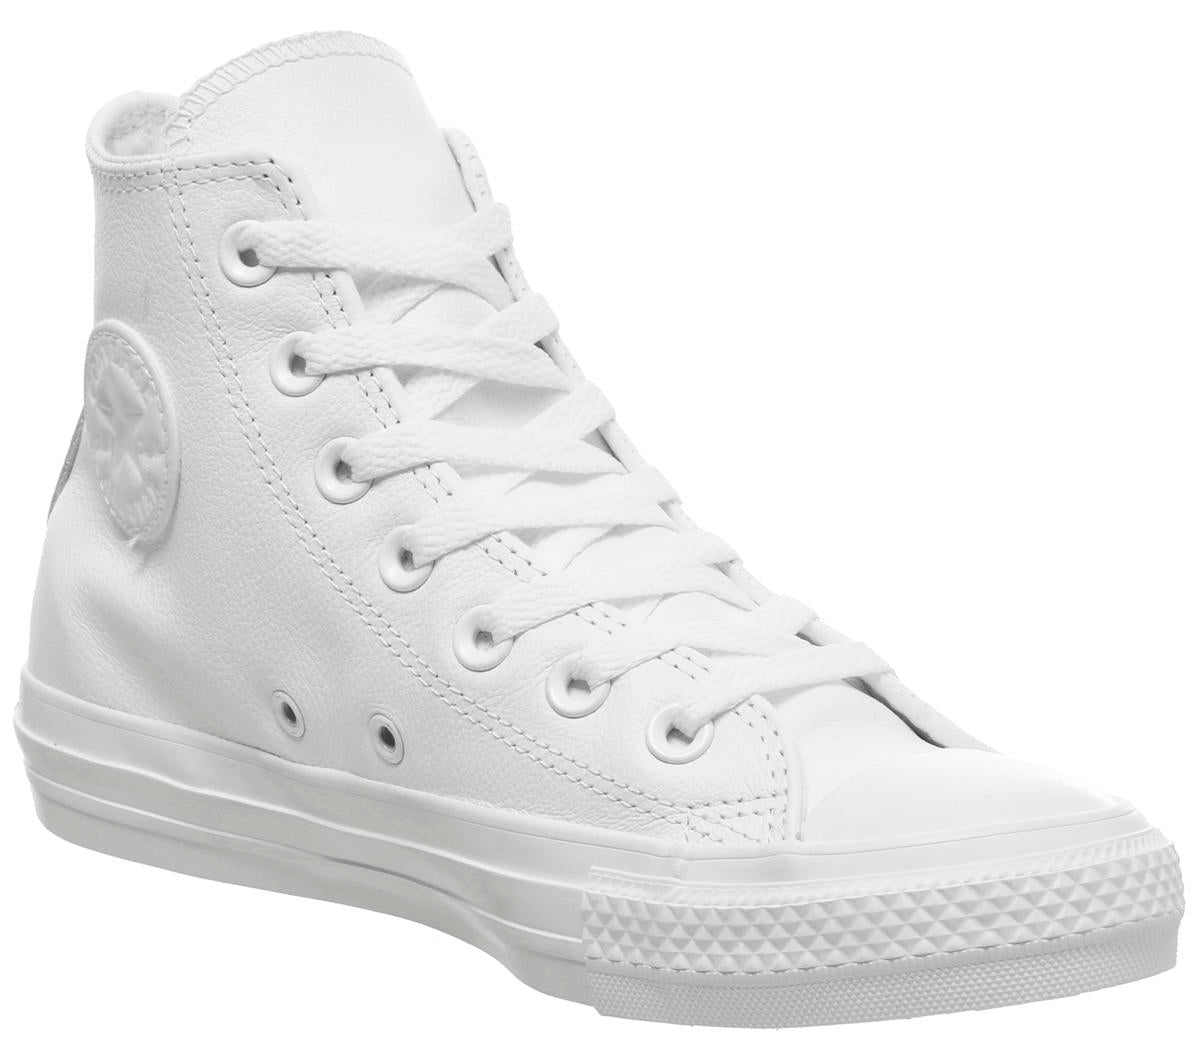 Womens Converse All Star Hi Leather White Mono Leather